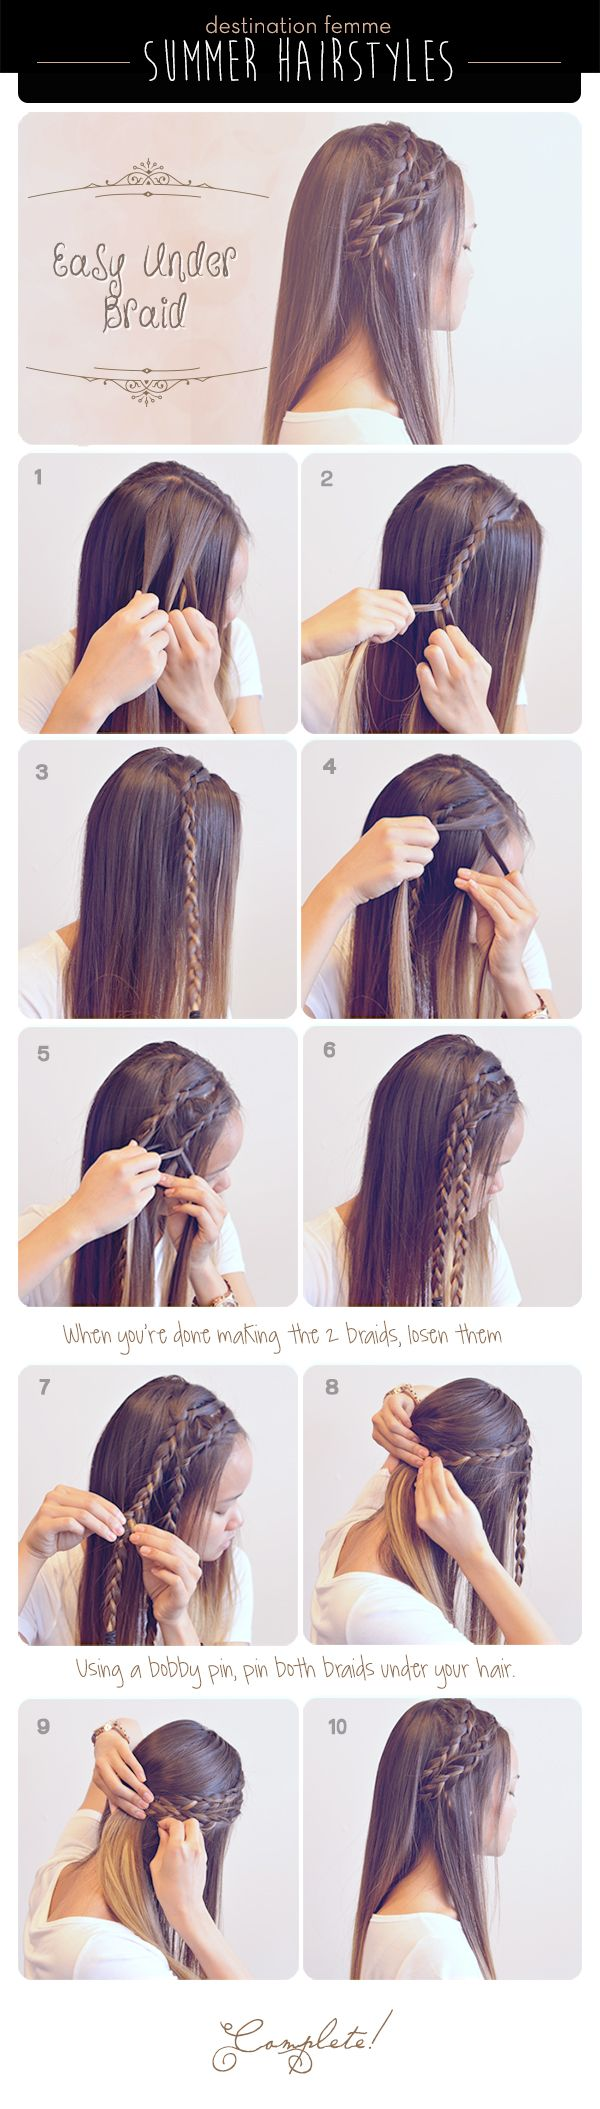 《Pinterest : @7angela03》♡ Braids on Braids: Three must have hairstyles for the summer #Beauty #Hair #Braids